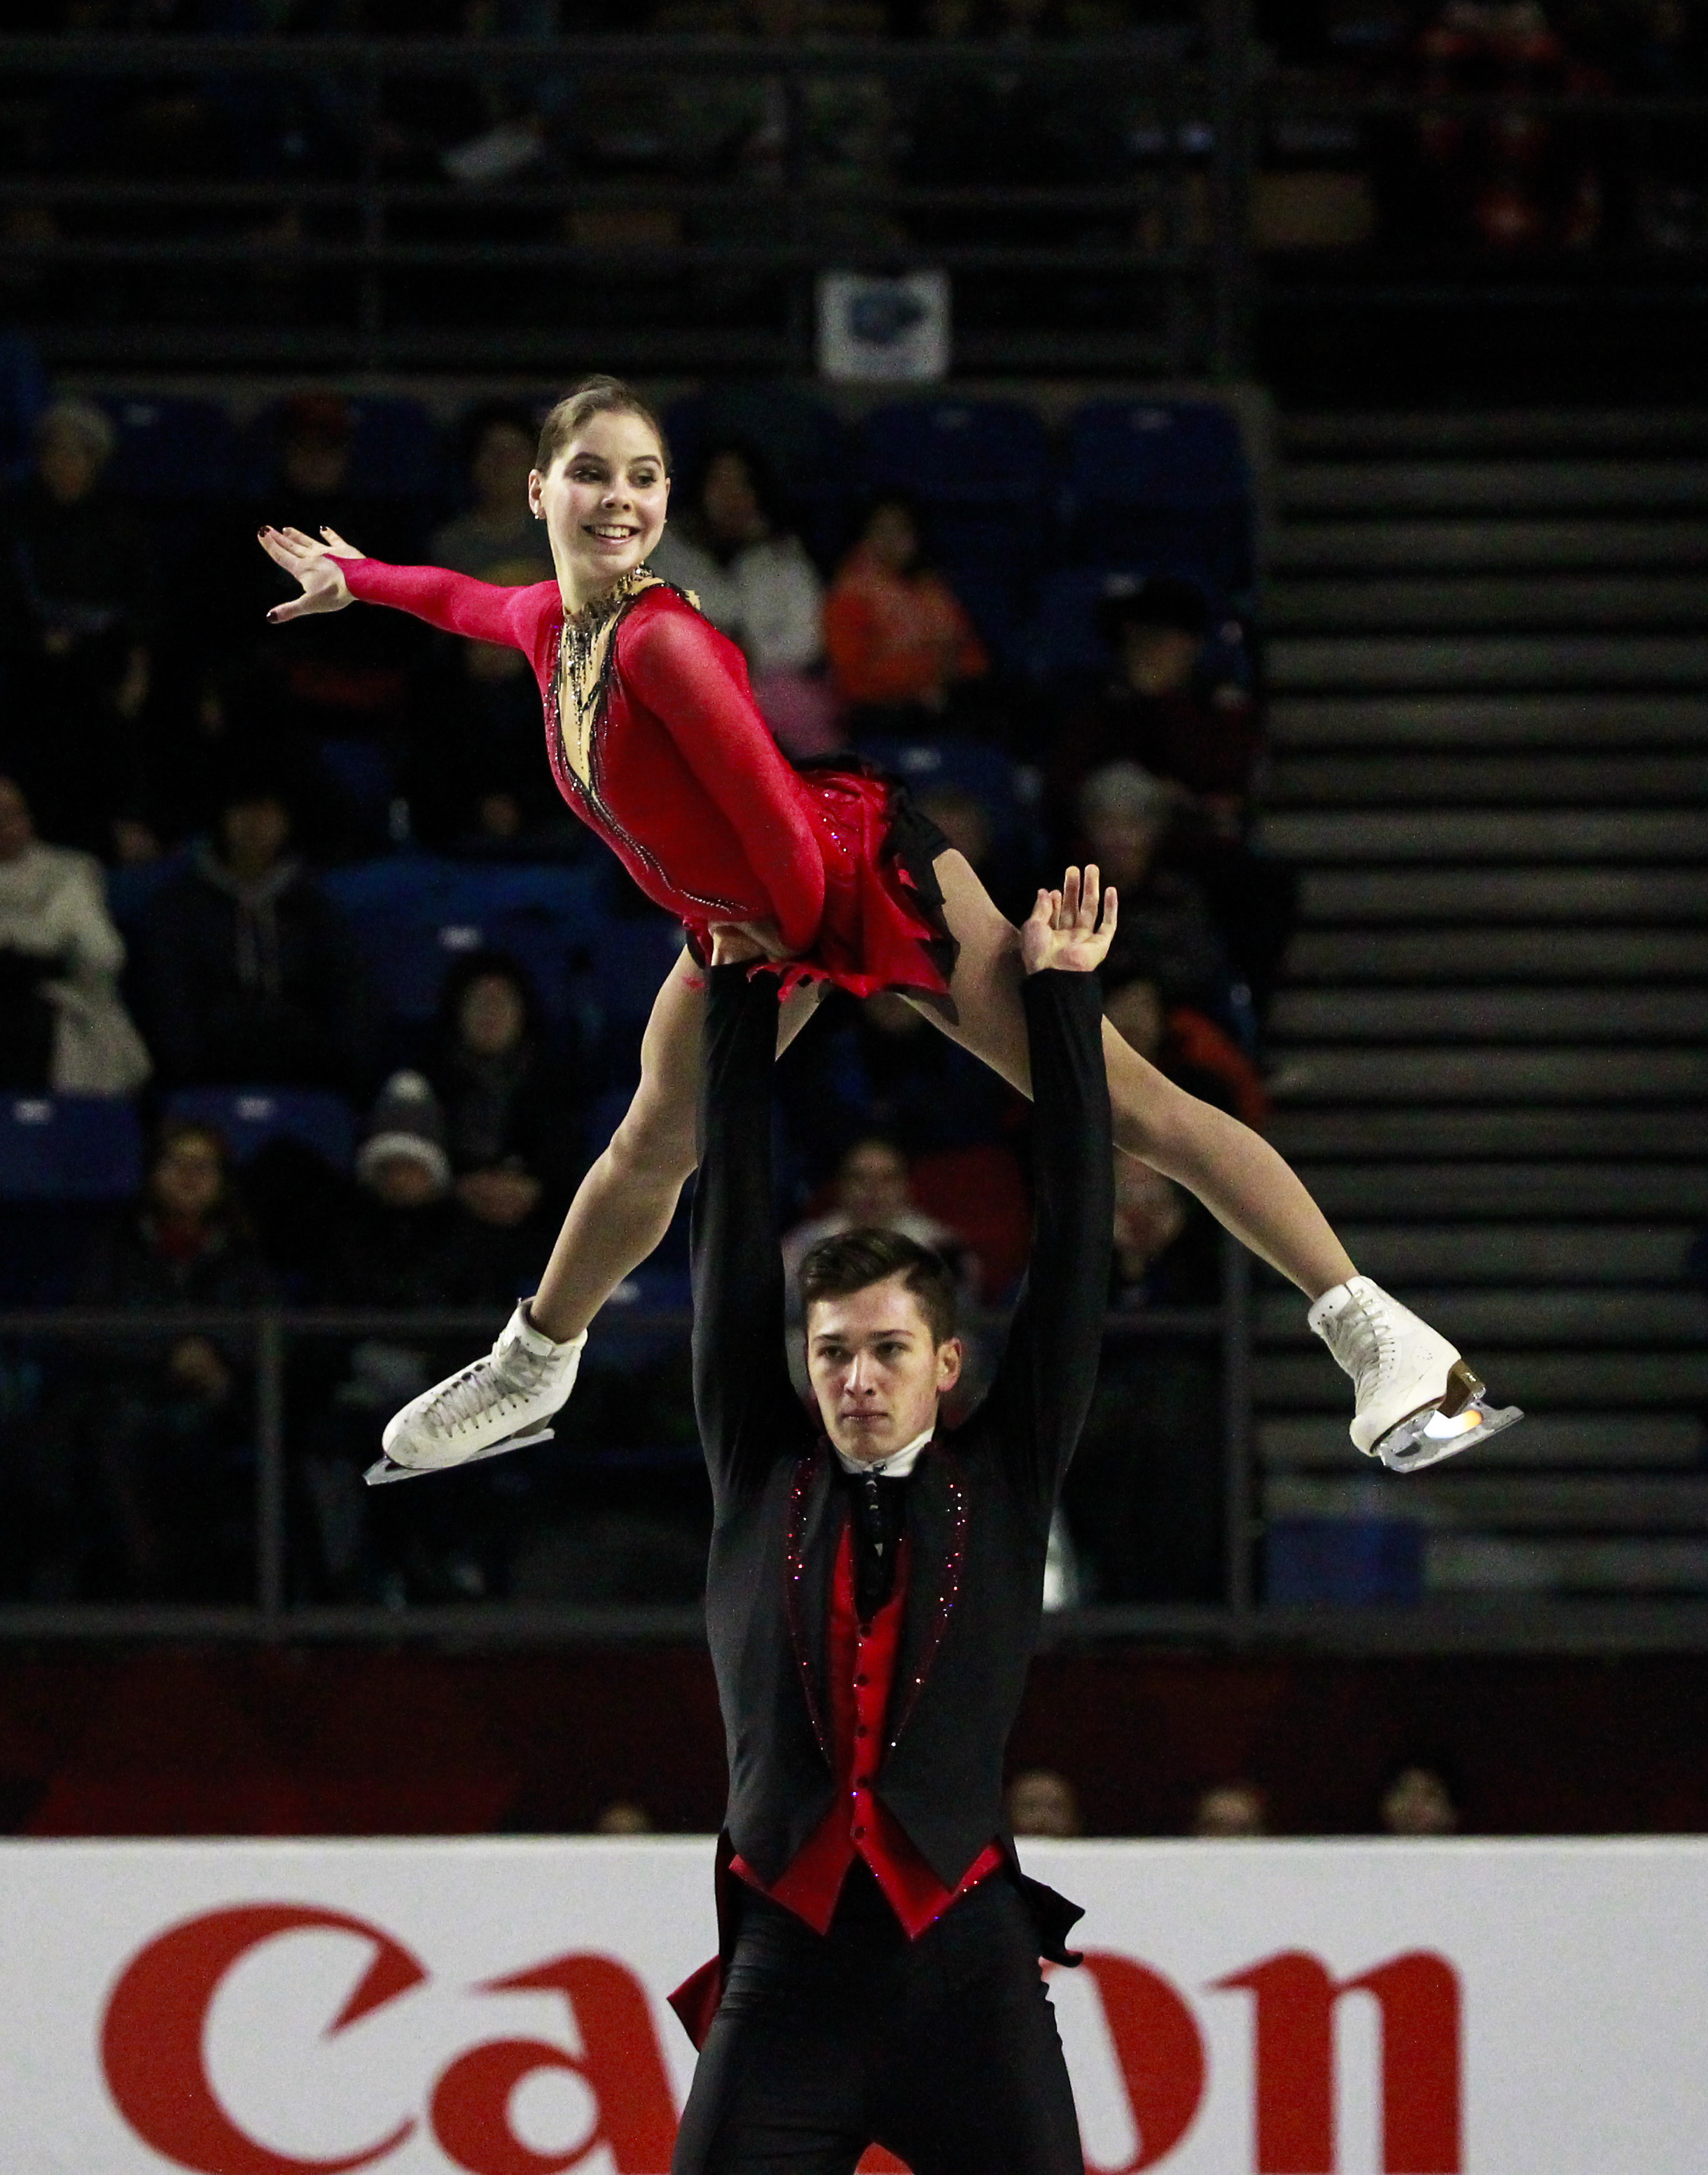 Mishina and Galliamov skate a clean program to gold.